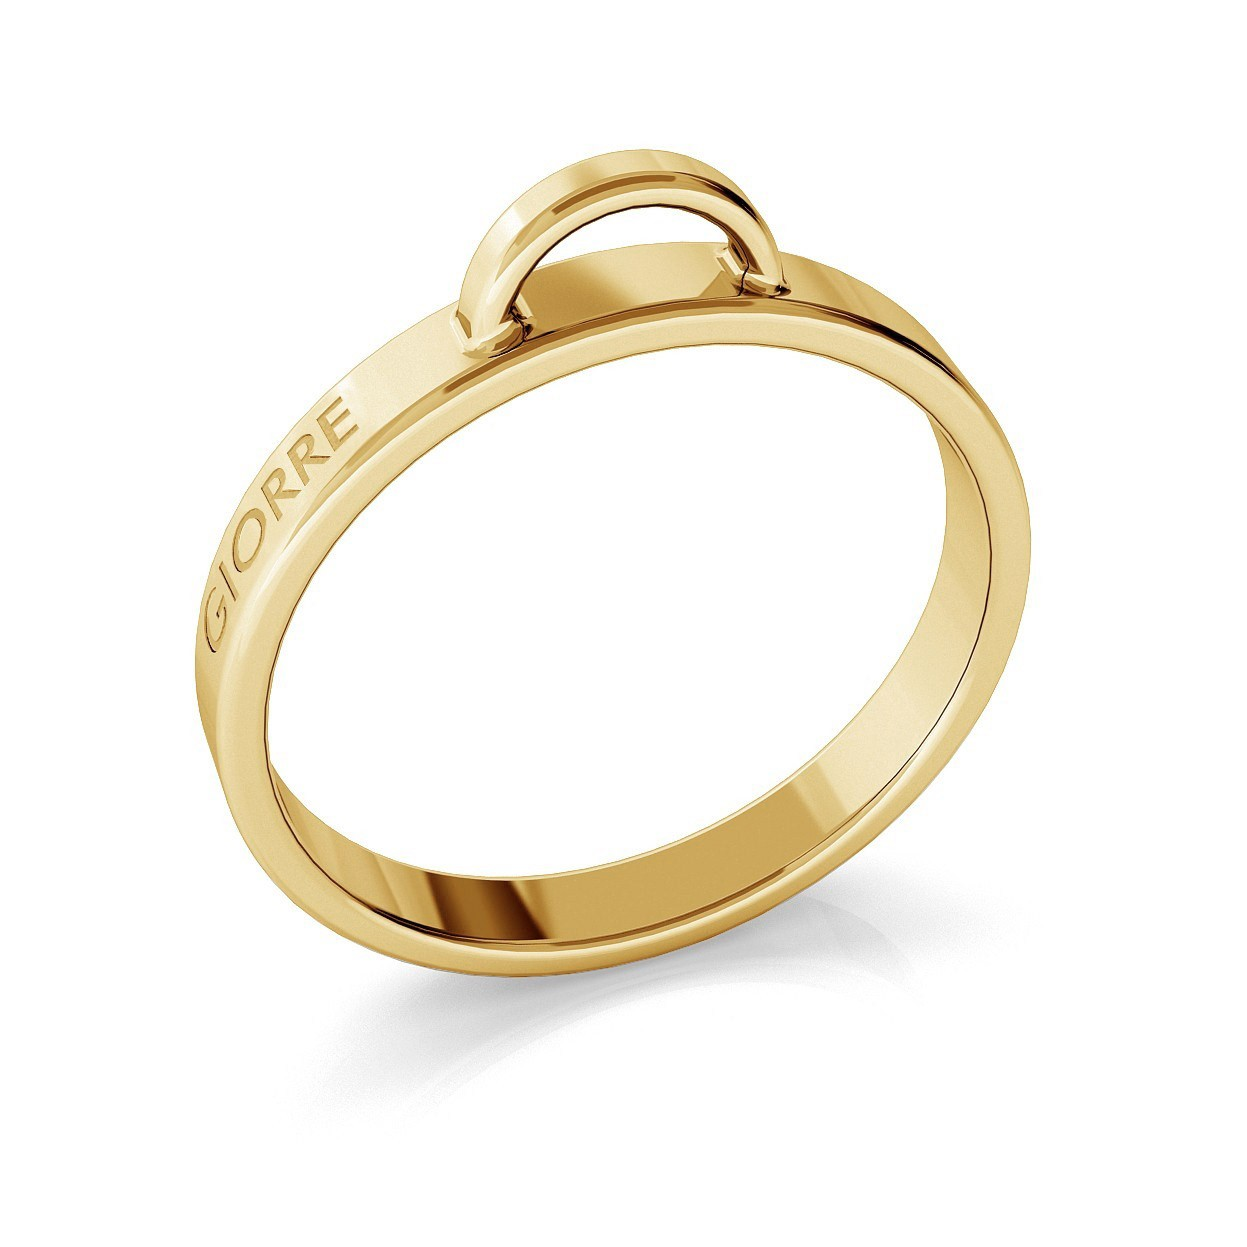 RING FOR CHARM, STERLING SILVER (925) RHODIUM OR GOLD PLATED